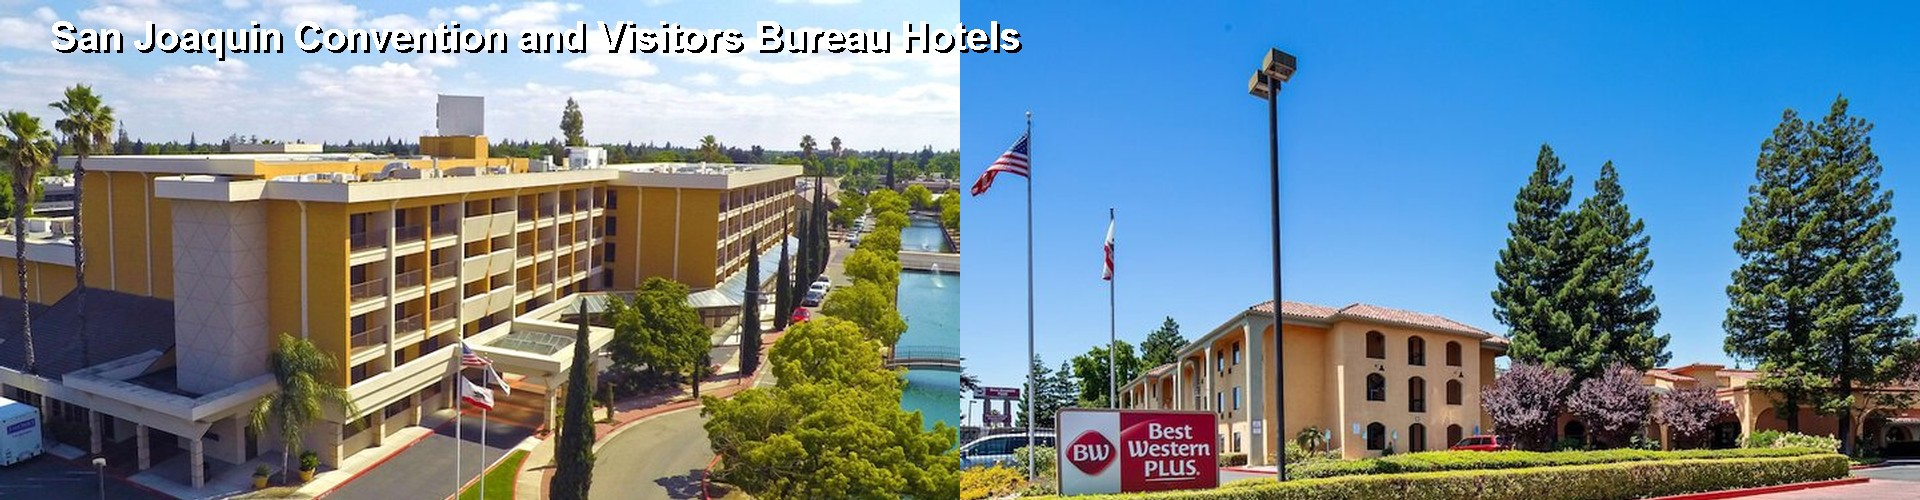 5 Best Hotels near San Joaquin Convention and Visitors Bureau